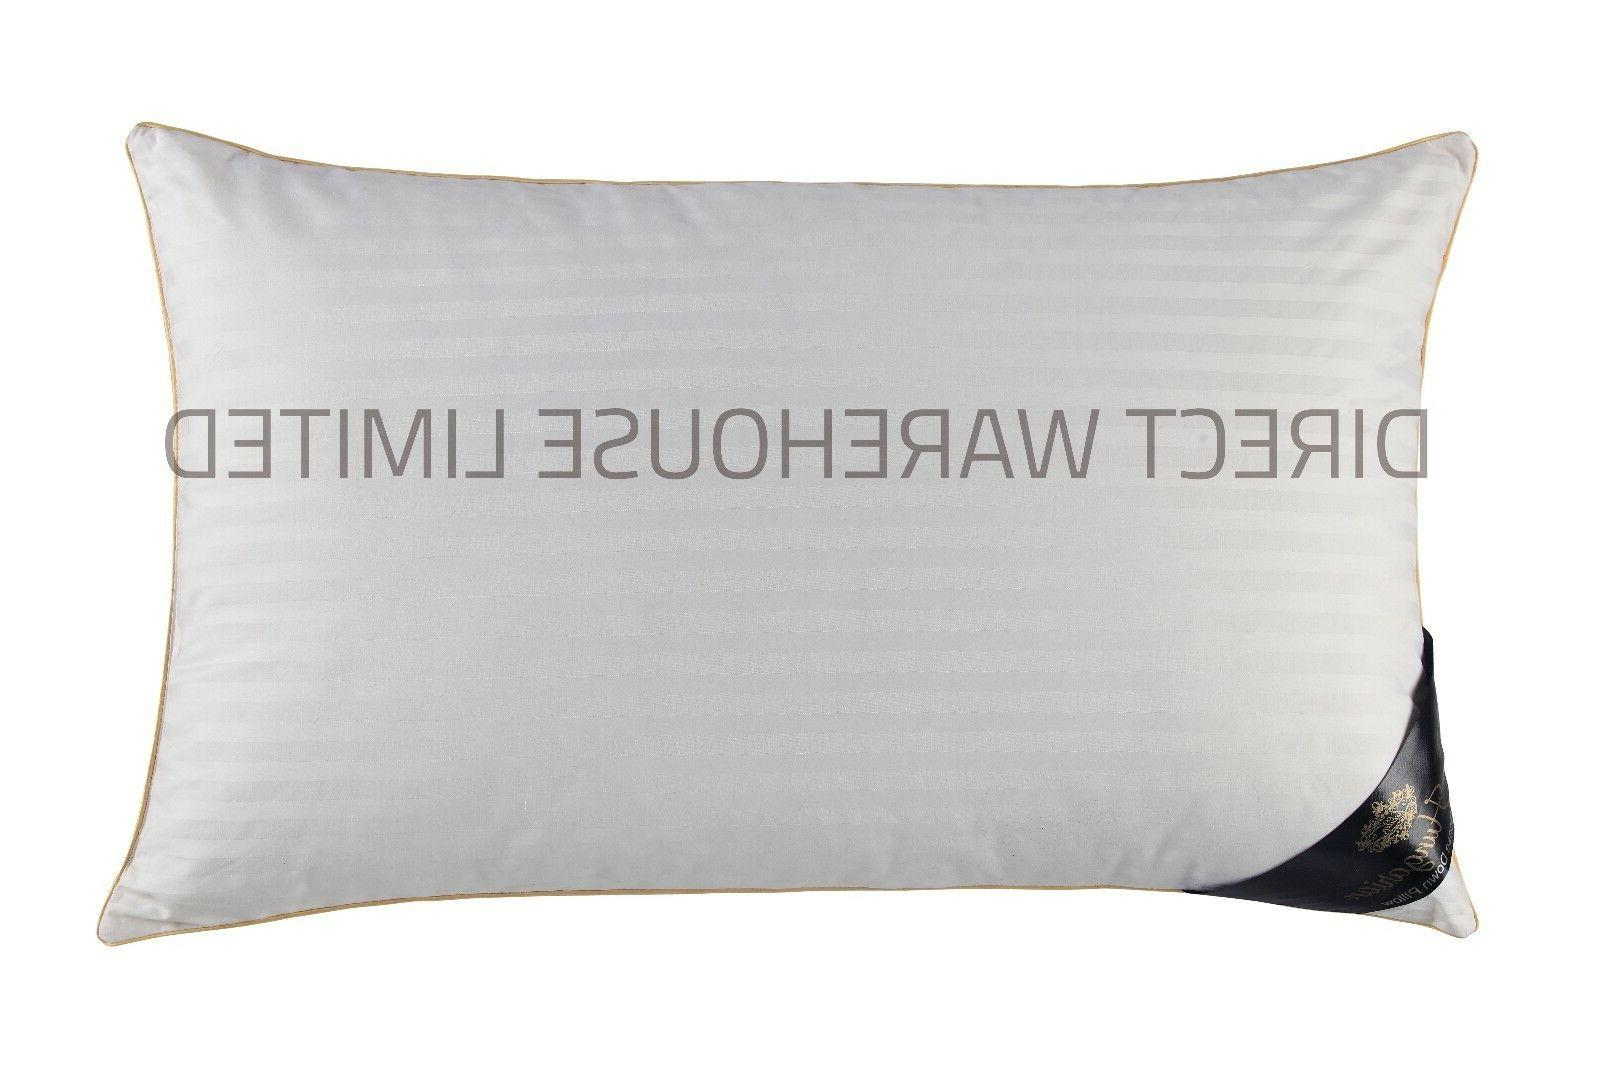 100% Hungarian Goose Down Pillows Luxury Hotel Quality - Fill